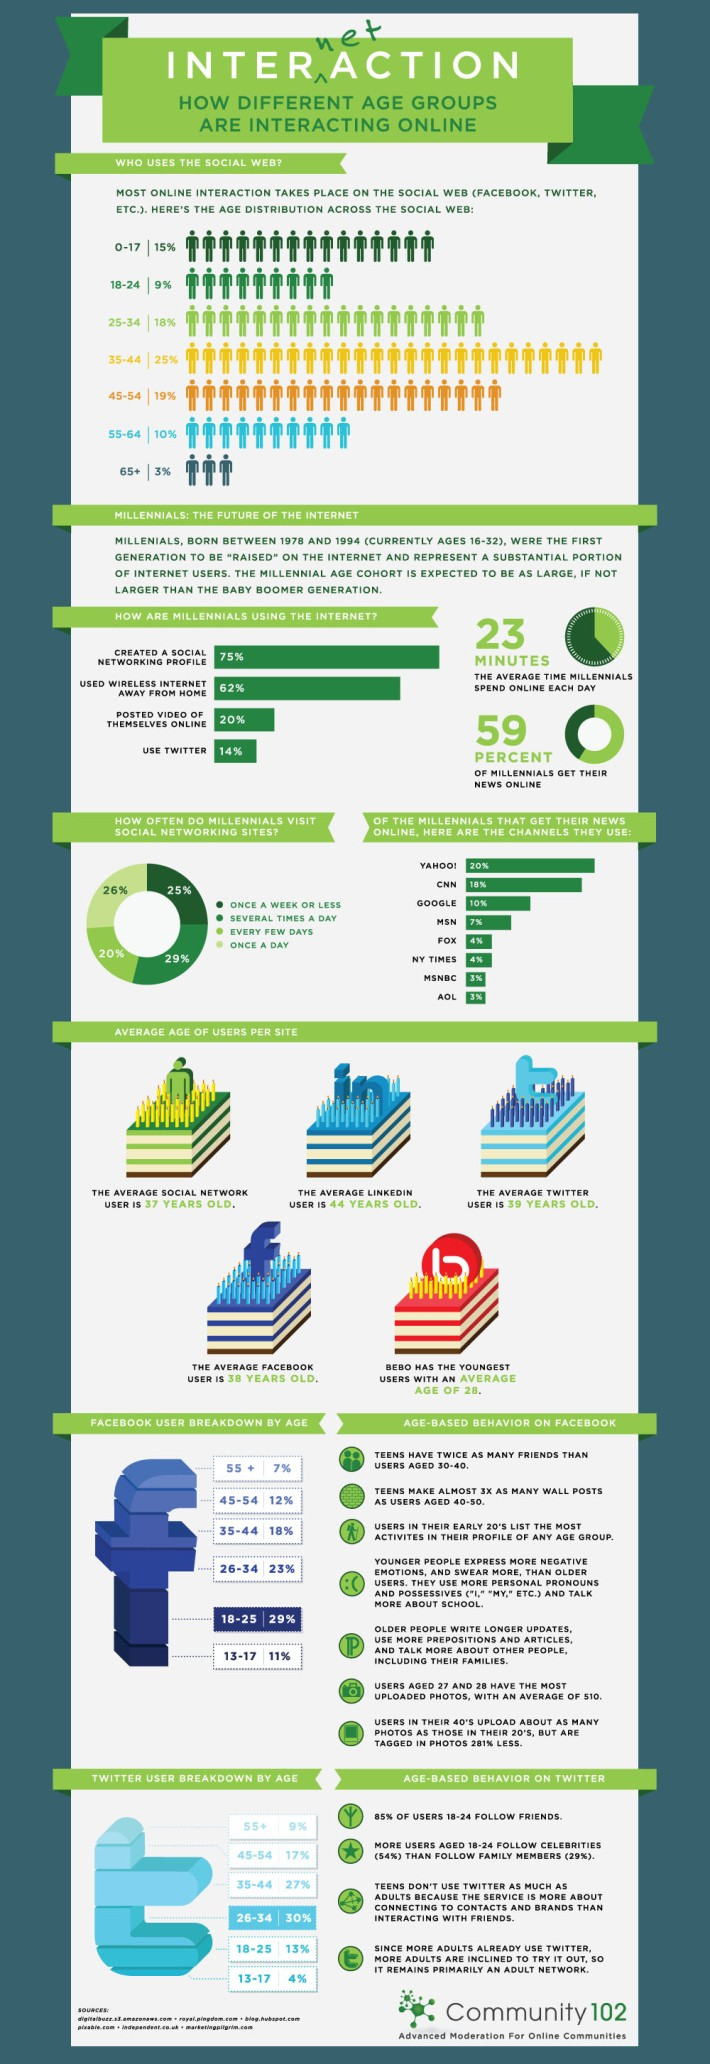 How-different-social-groups-interact-online-infographic